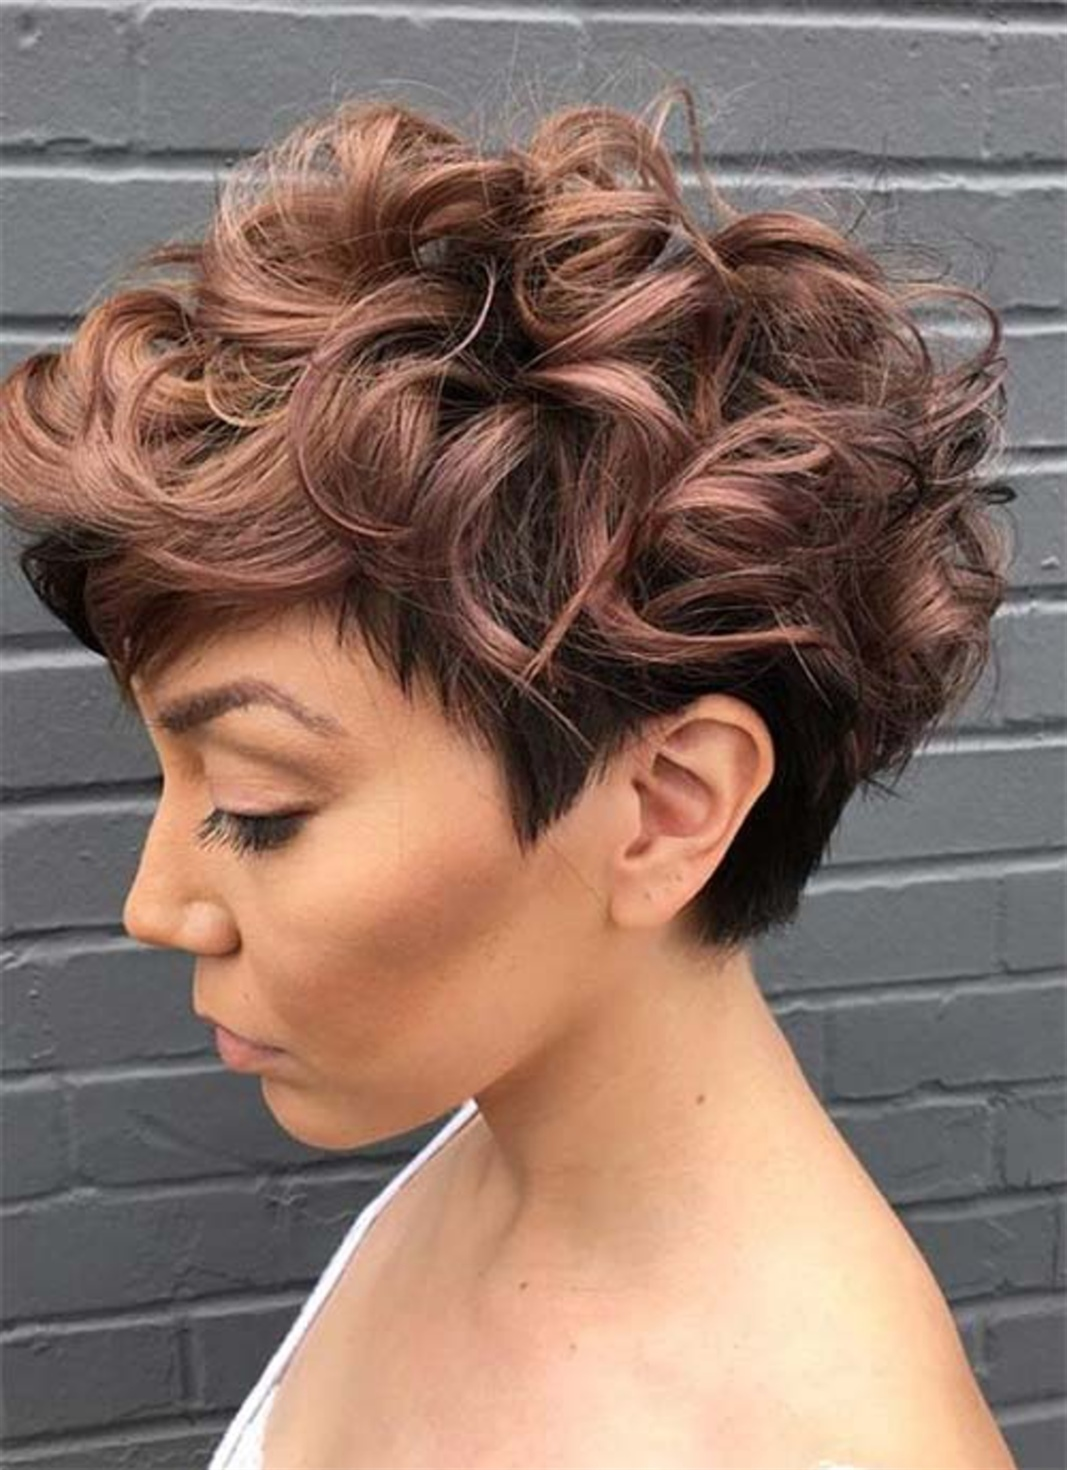 Short Hairstyles for Curly 2021